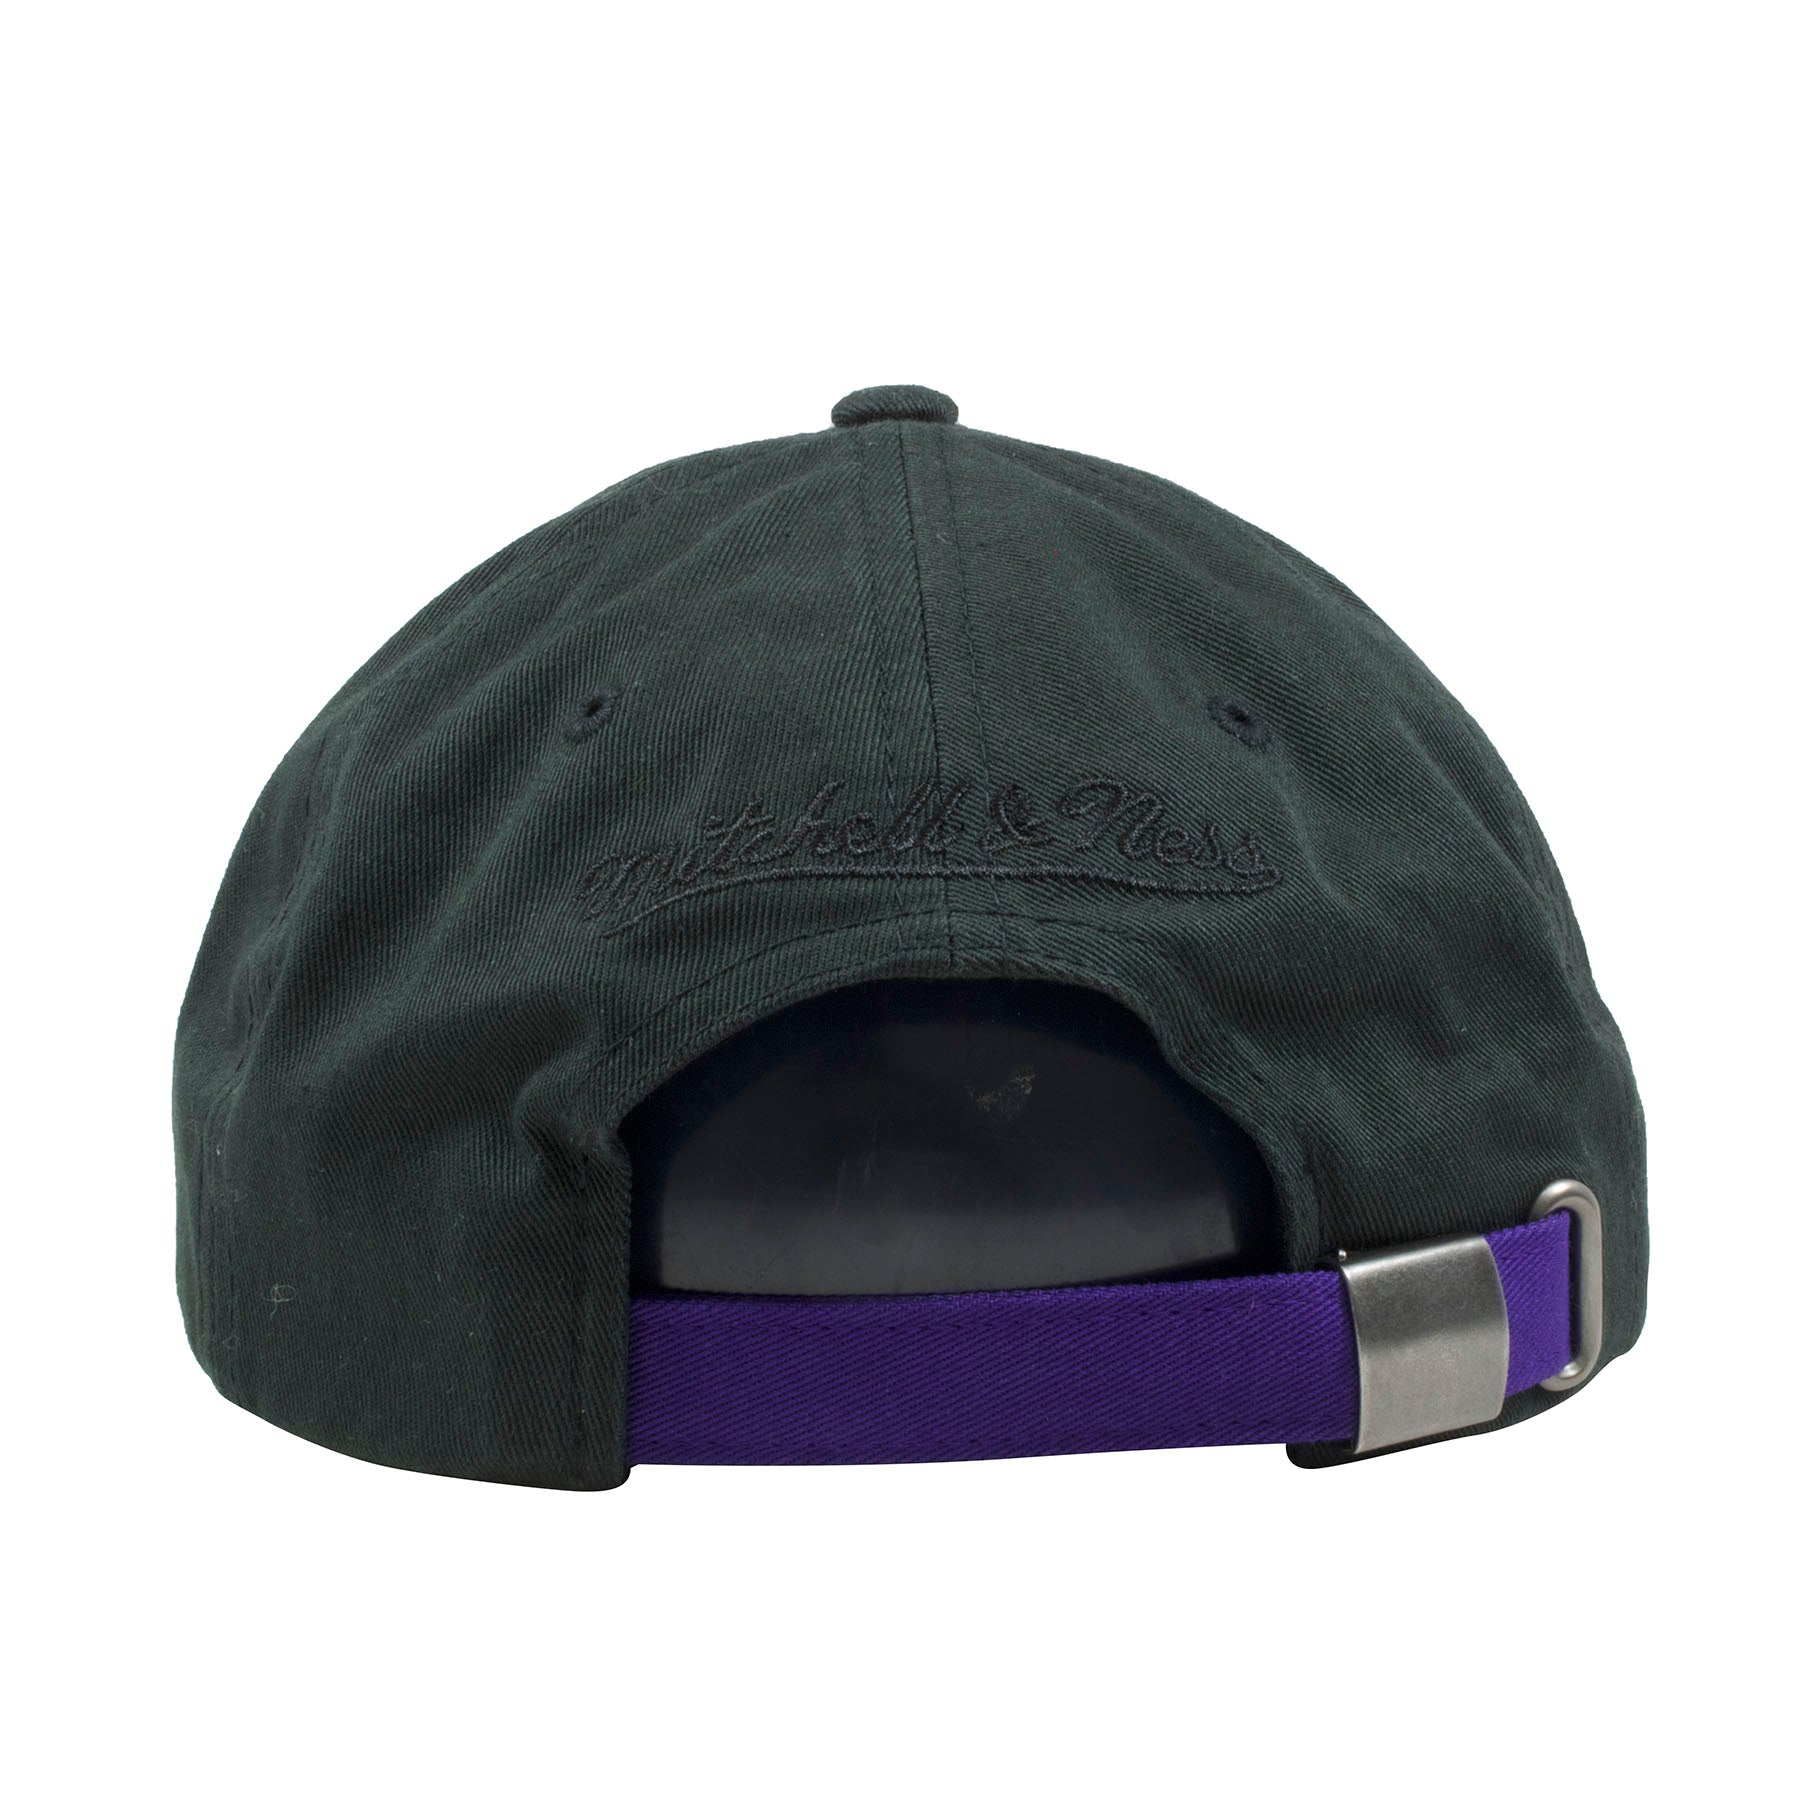 de178ff86c8 ... the back of the golden state warriors space jam 11 dad hat is a purple  adjustable